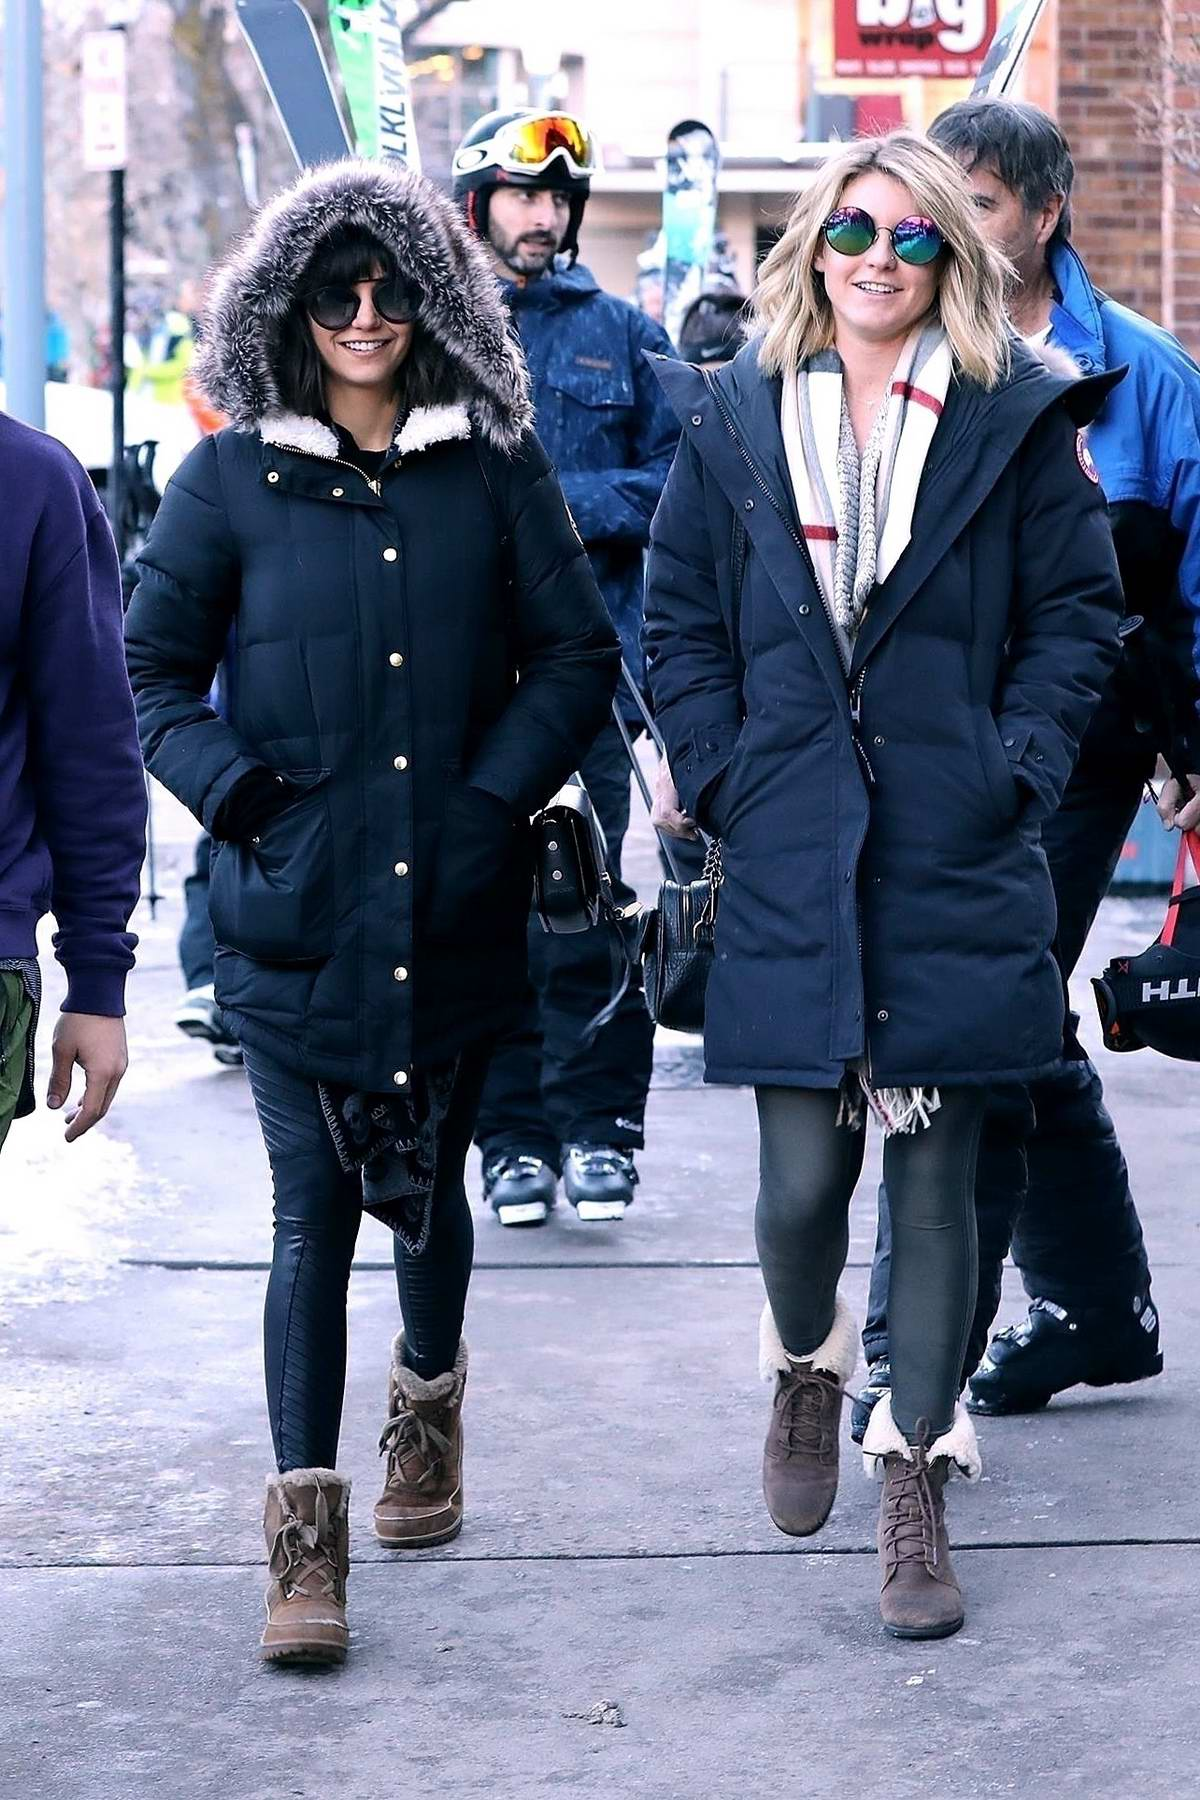 Nina Dobrev wearing a fur lined parka while out with her friends in Aspen, Colorado